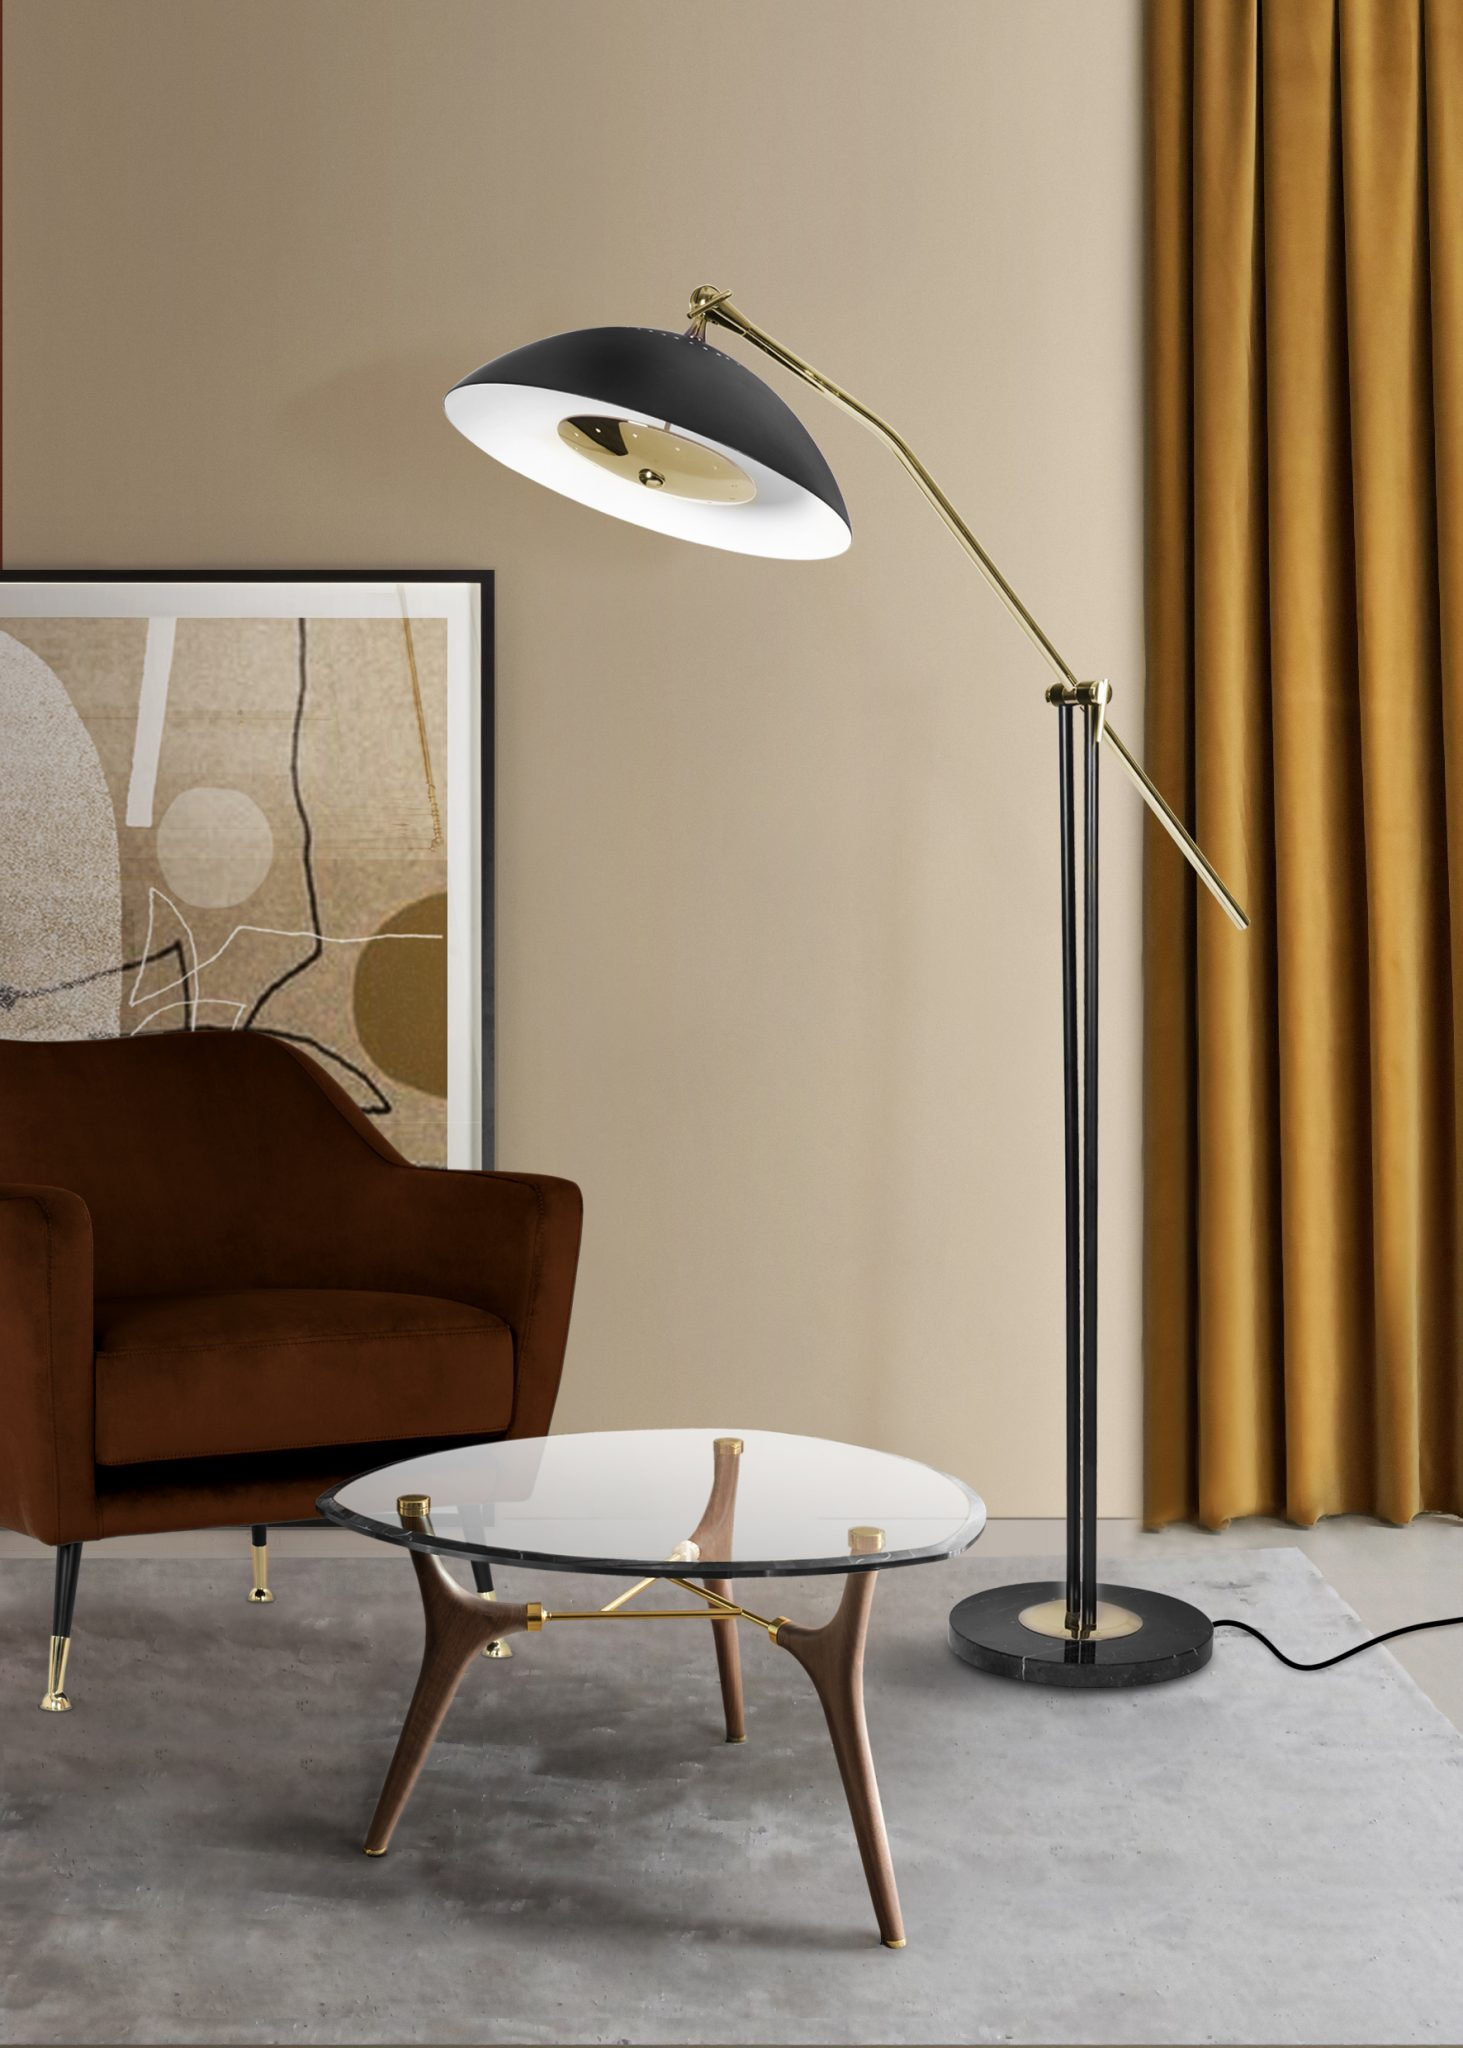 MINIMALIST LIGHTING DESIGN FOR YOUR LIVING ROOM